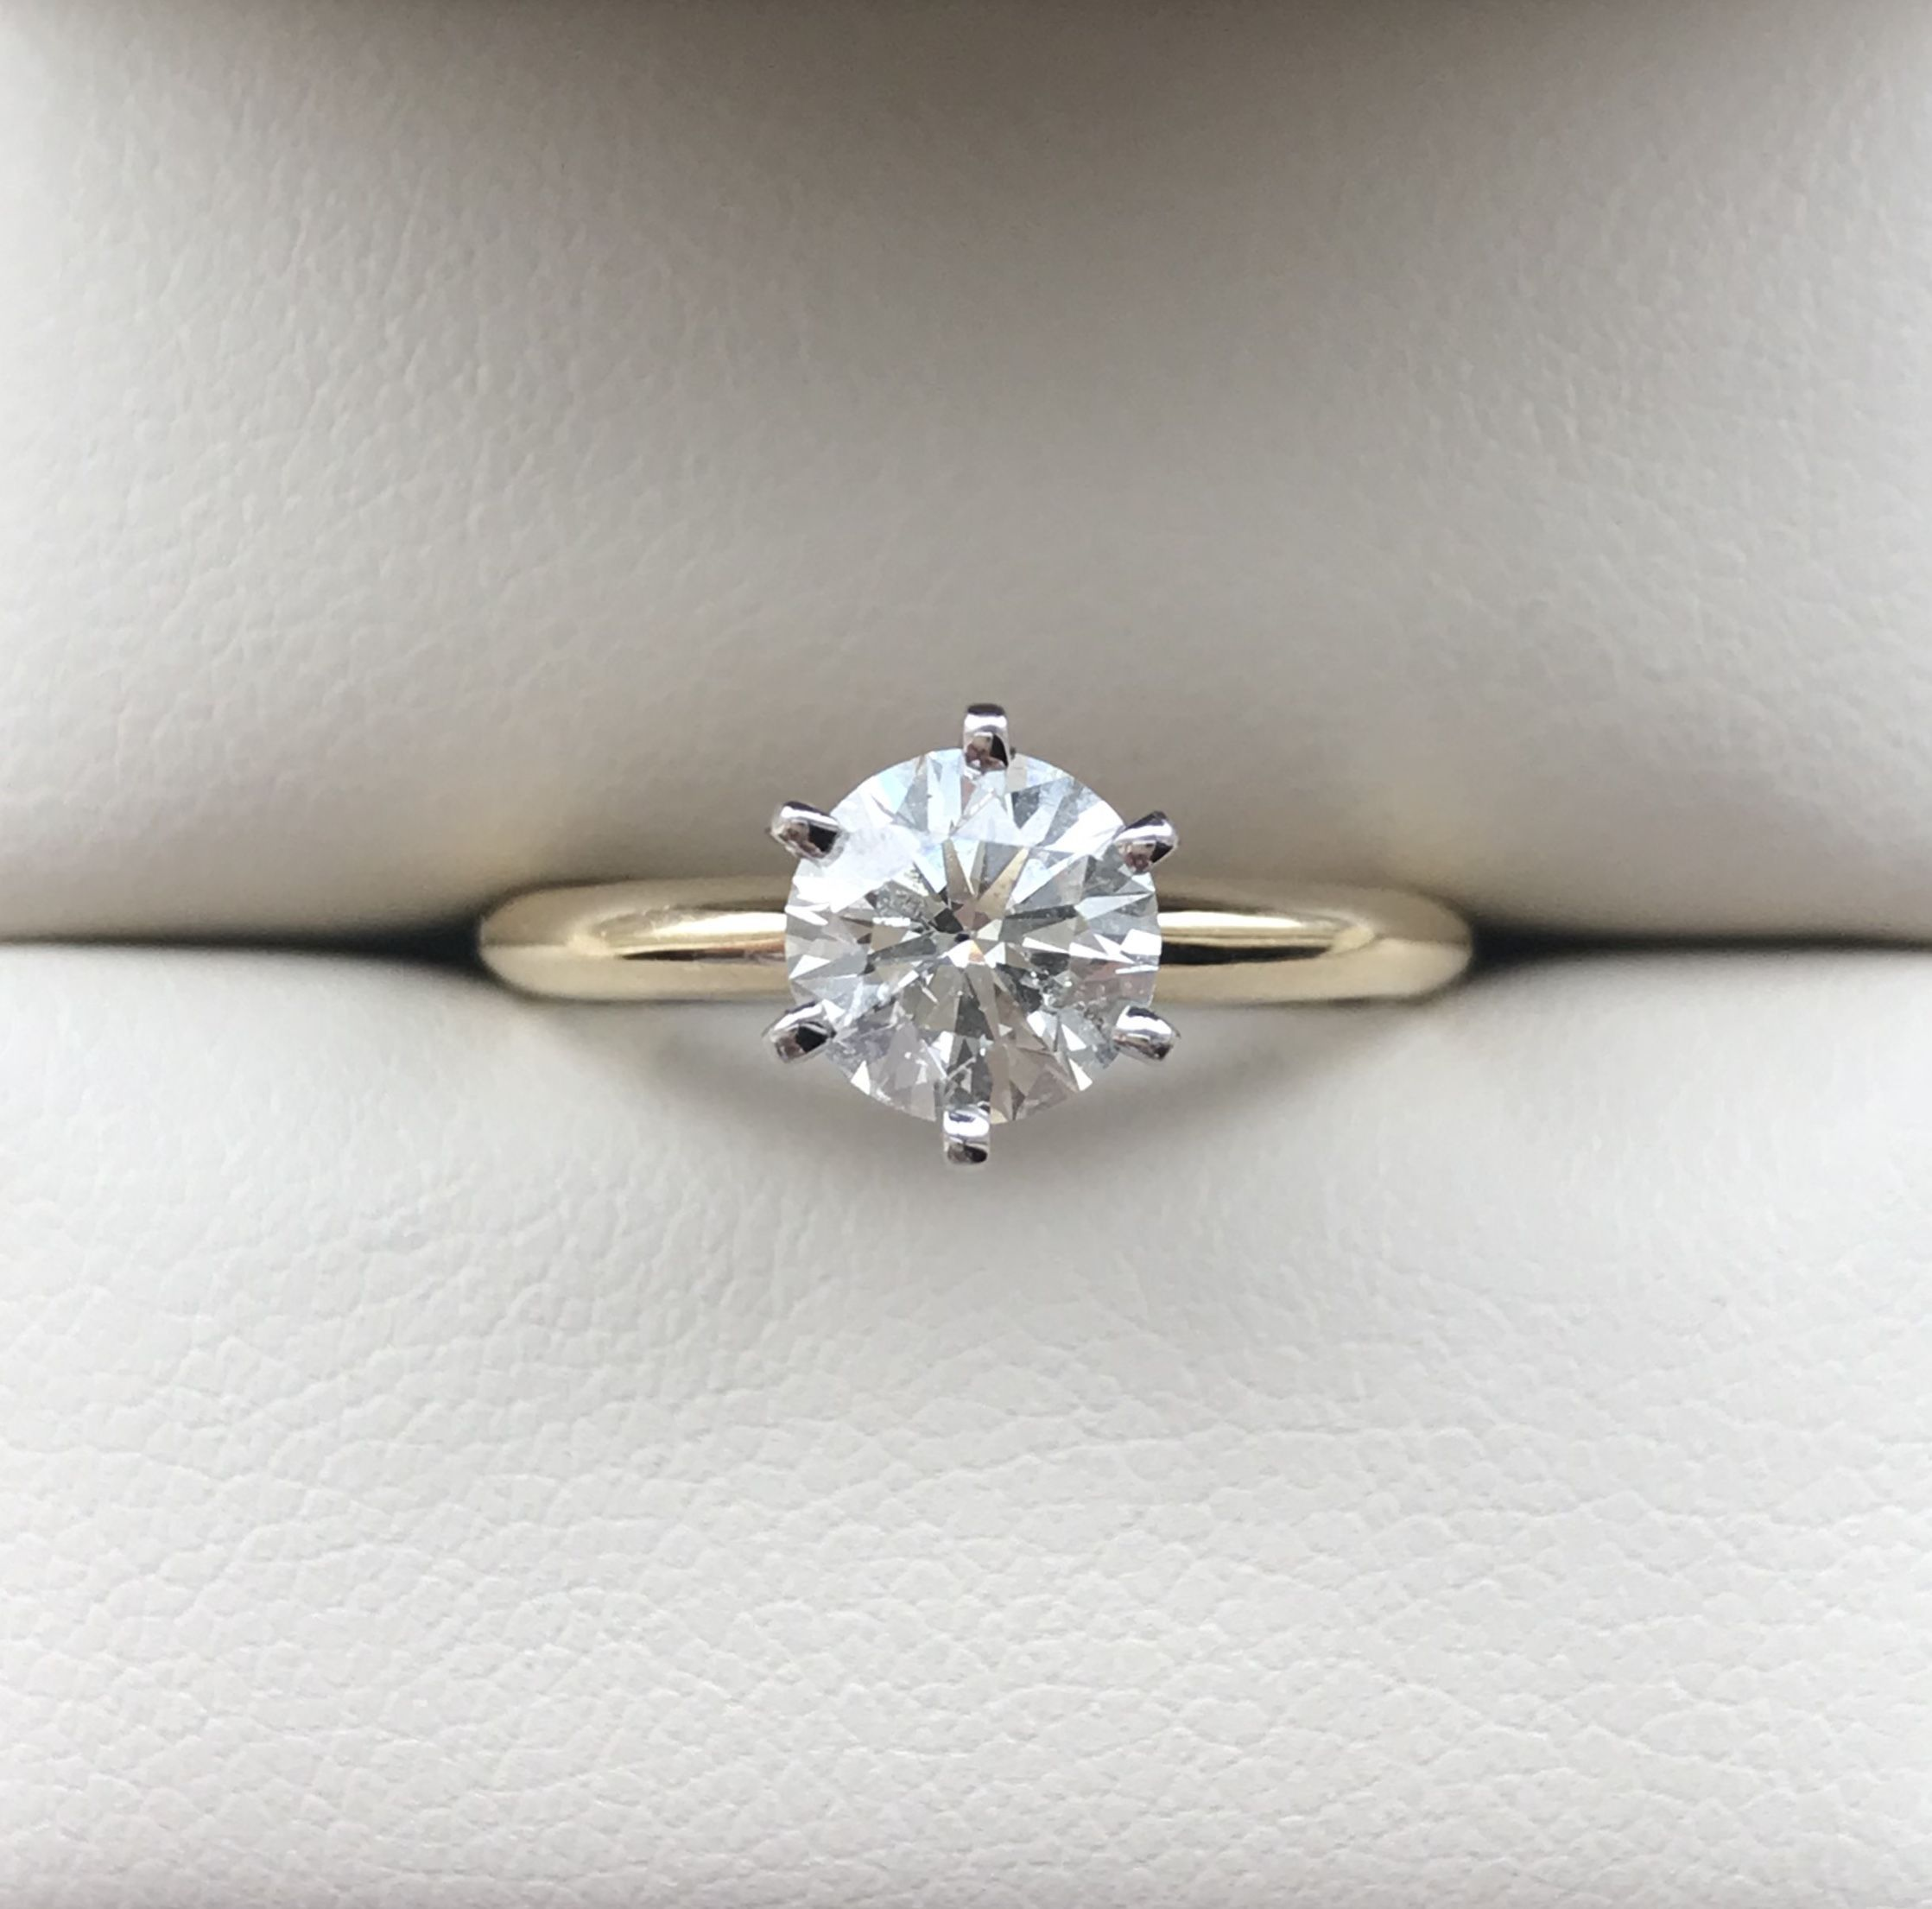 rings engagement solitaire ring diamondland carat jewelry jewellery diamond